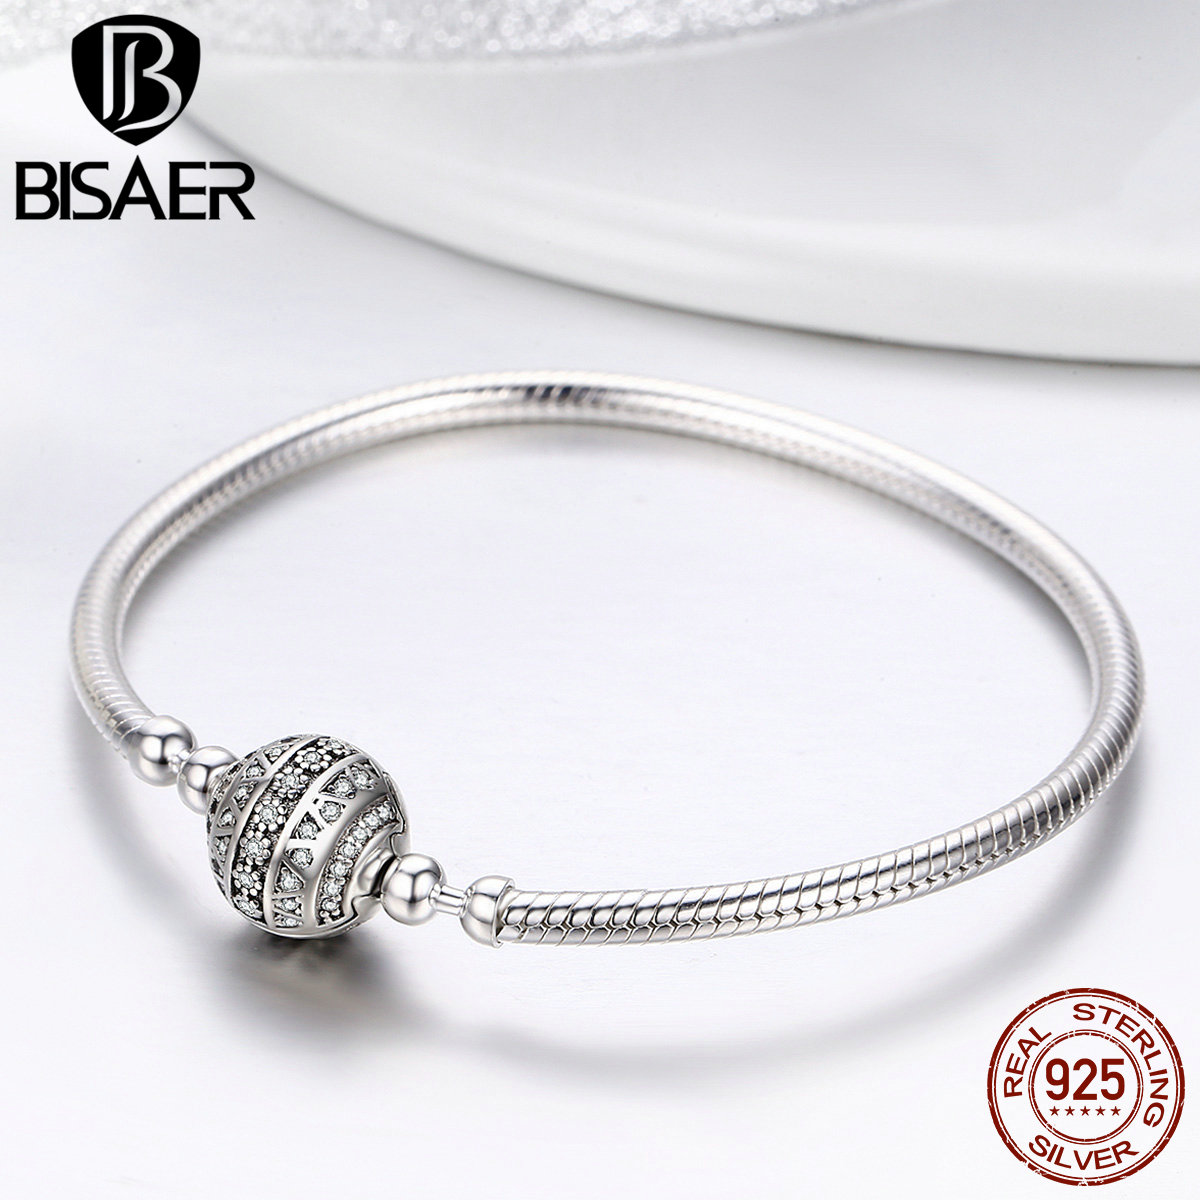 BISAER Authentic 925 Sterling Silver Clear CZ Round Clasp Femme Snake Chain Bracelets for Women Silver Jewelry Pulseira GXB062